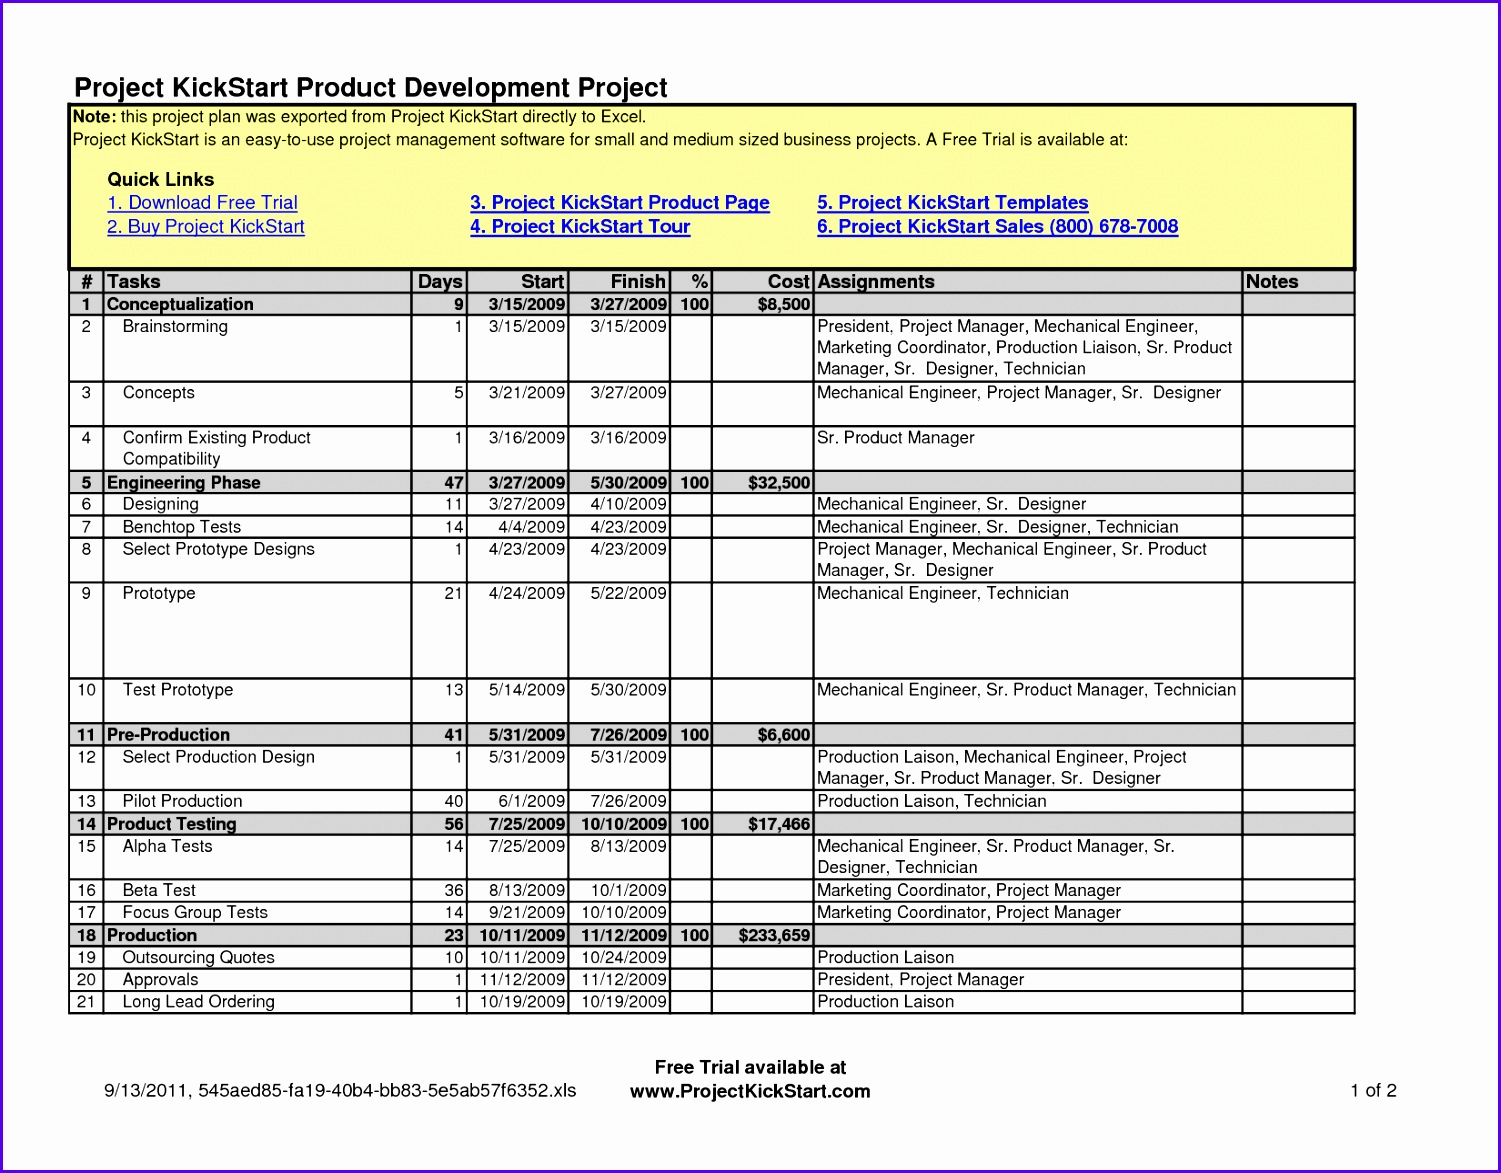 Sample Free Project Management Templates Excel 2007 N1nus Beautiful Free Project Management tools and Templates Project Management 16501275